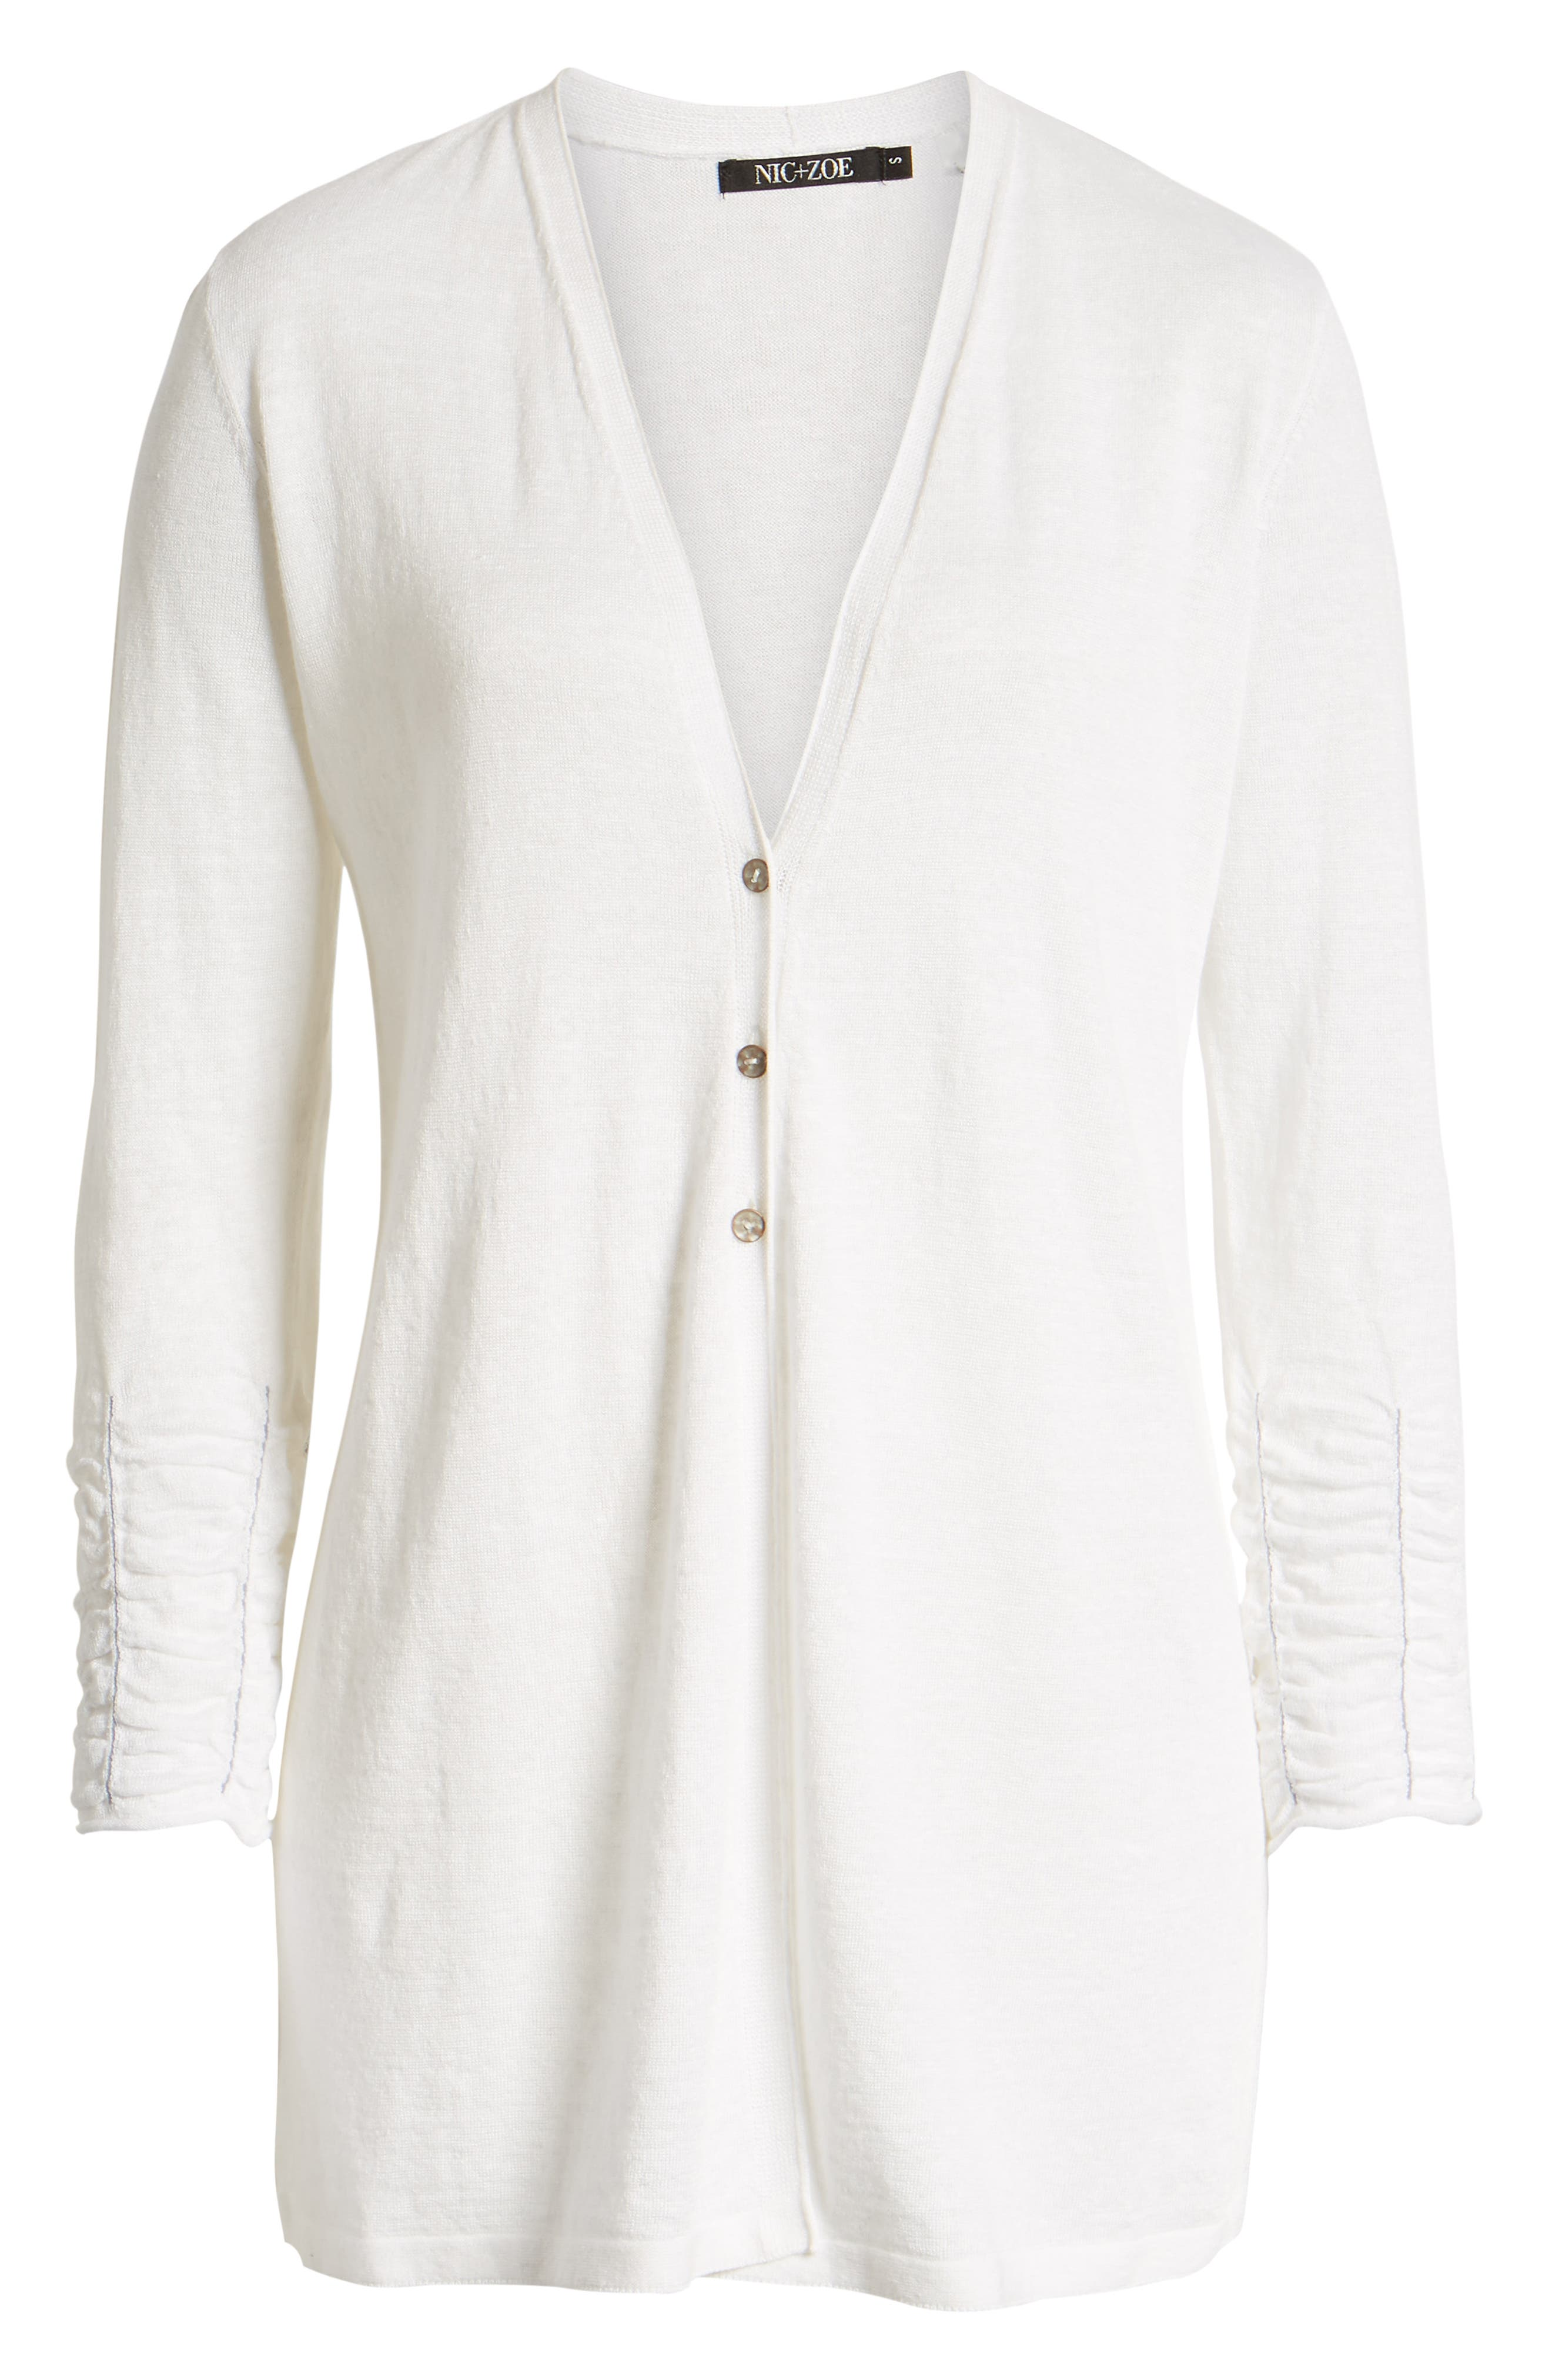 NIC+ZOE, Ruched Sleeve Cardigan, Alternate thumbnail 6, color, PAPER WHITE